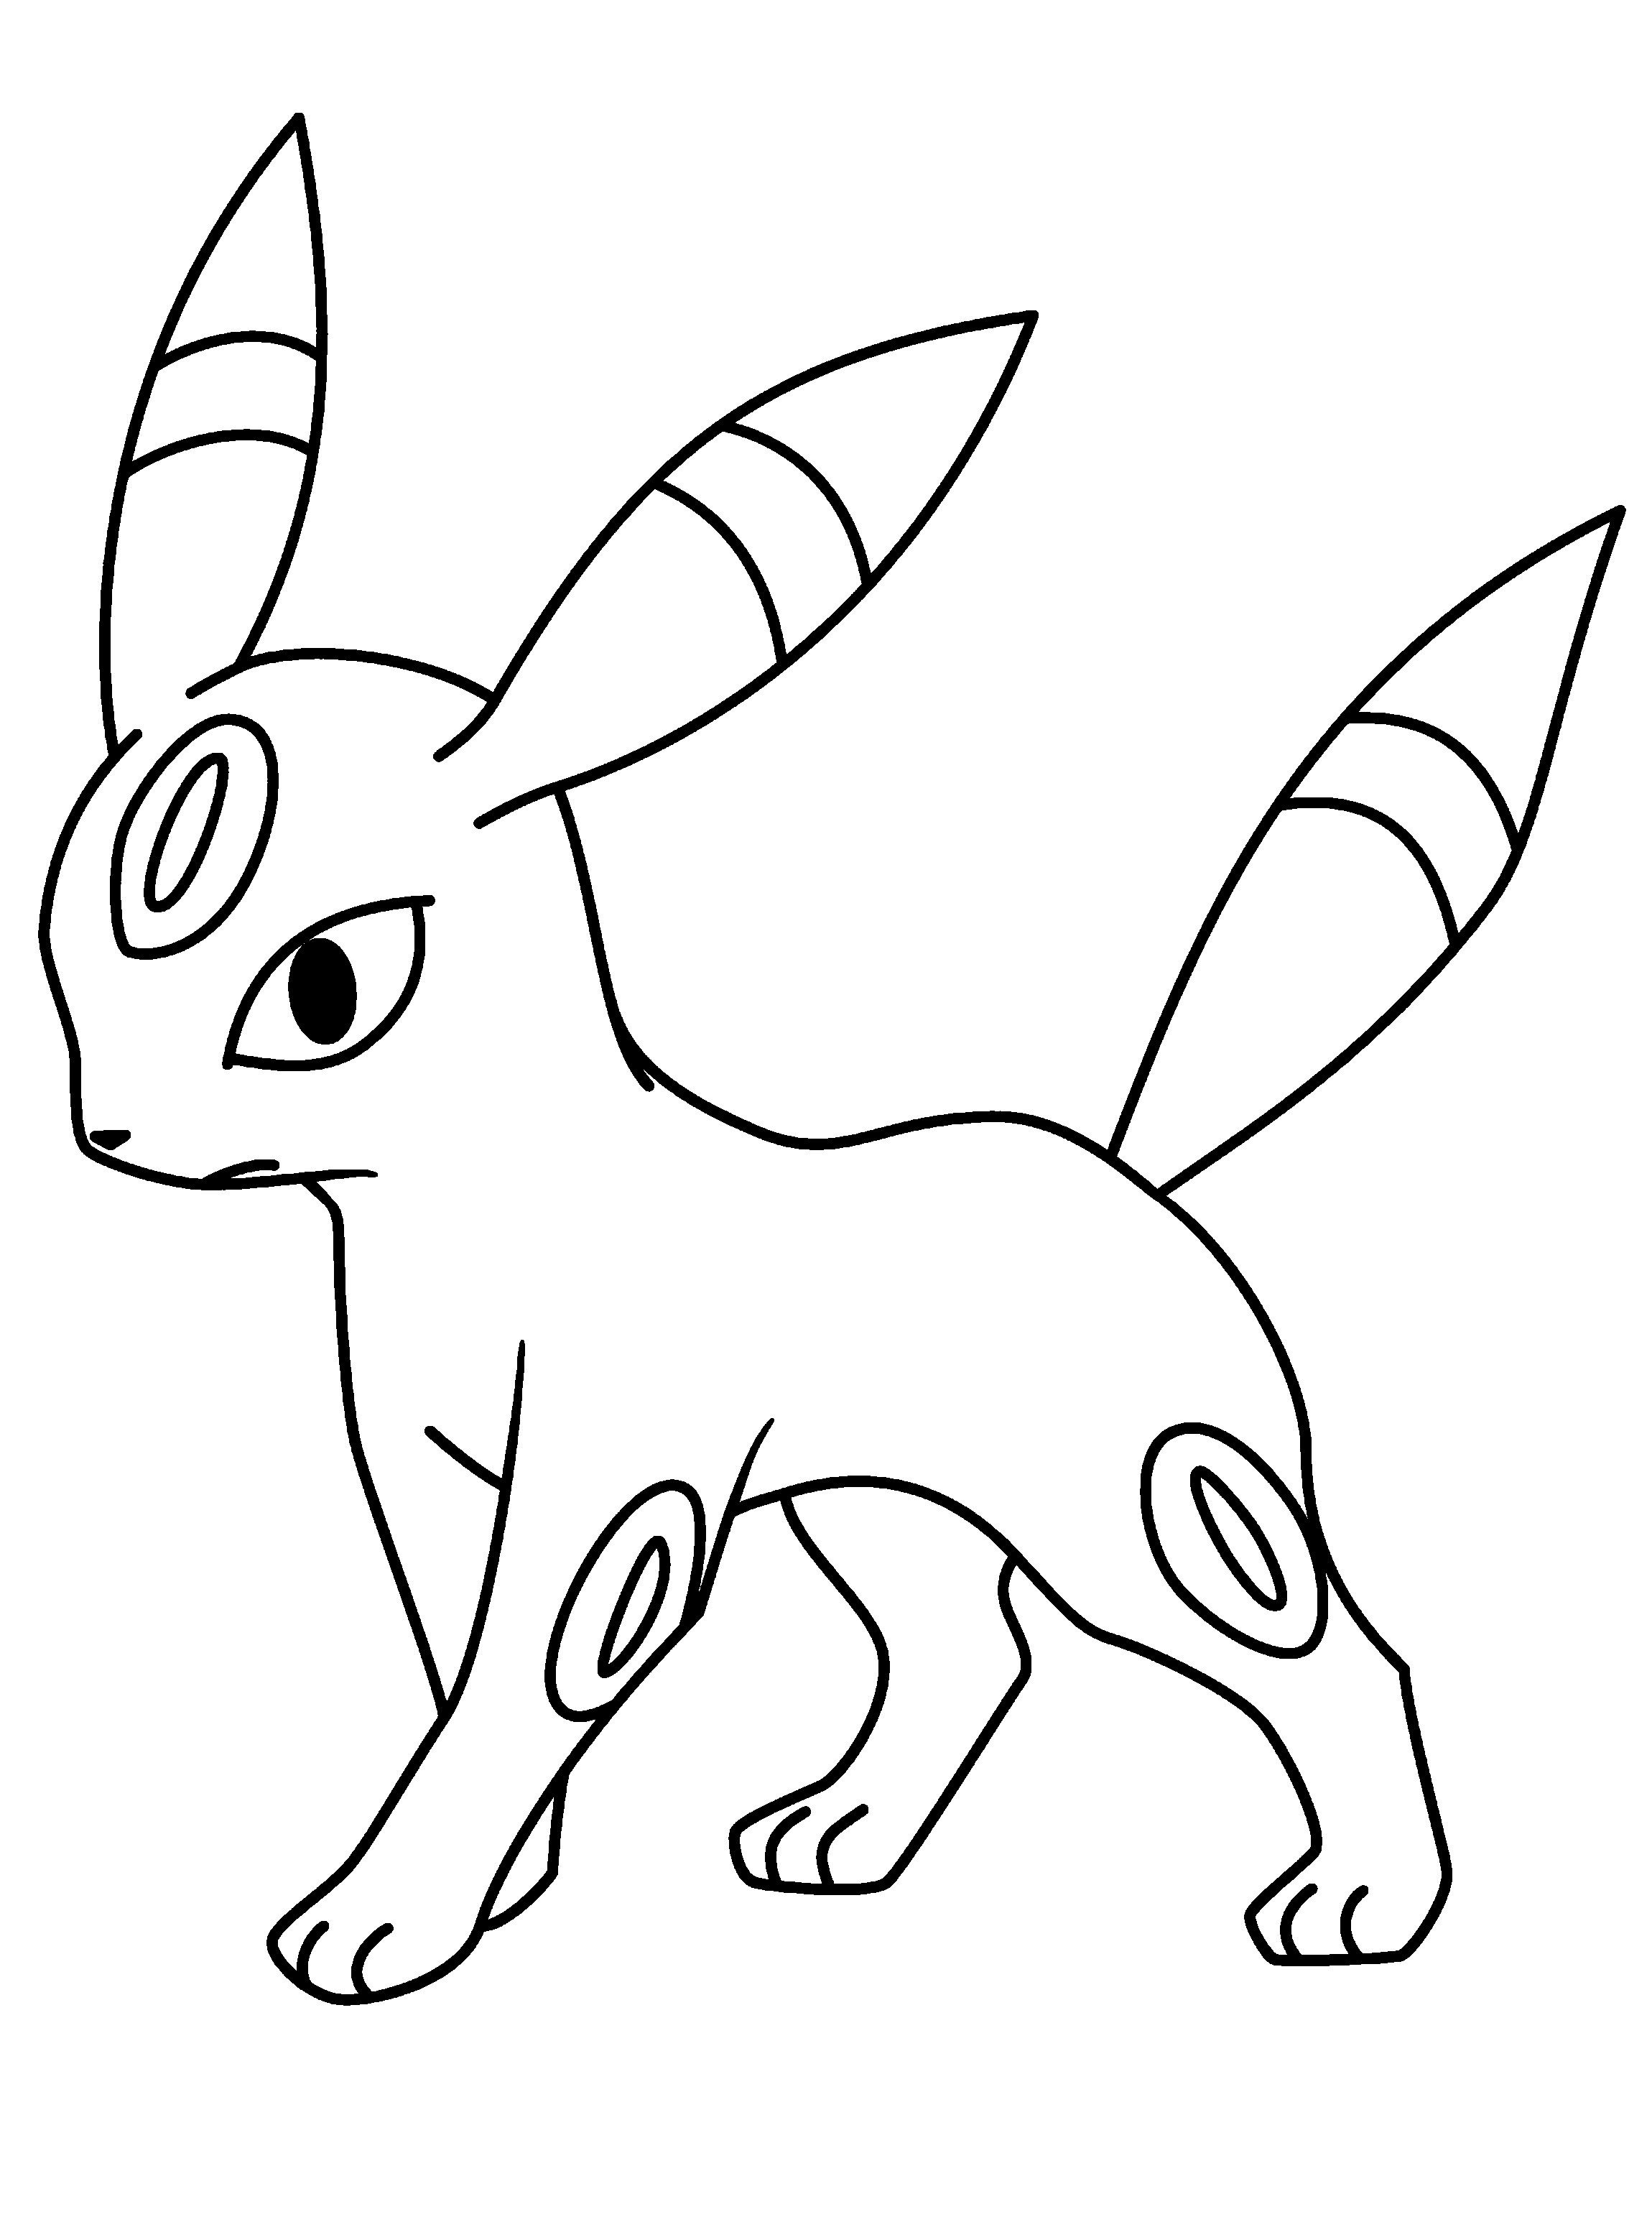 25 Brilliant Photo Of Pokemon Coloring Pages Eevee Davemelillo Com Pokemon Coloring Pages Pokemon Coloring Pokemon Drawings